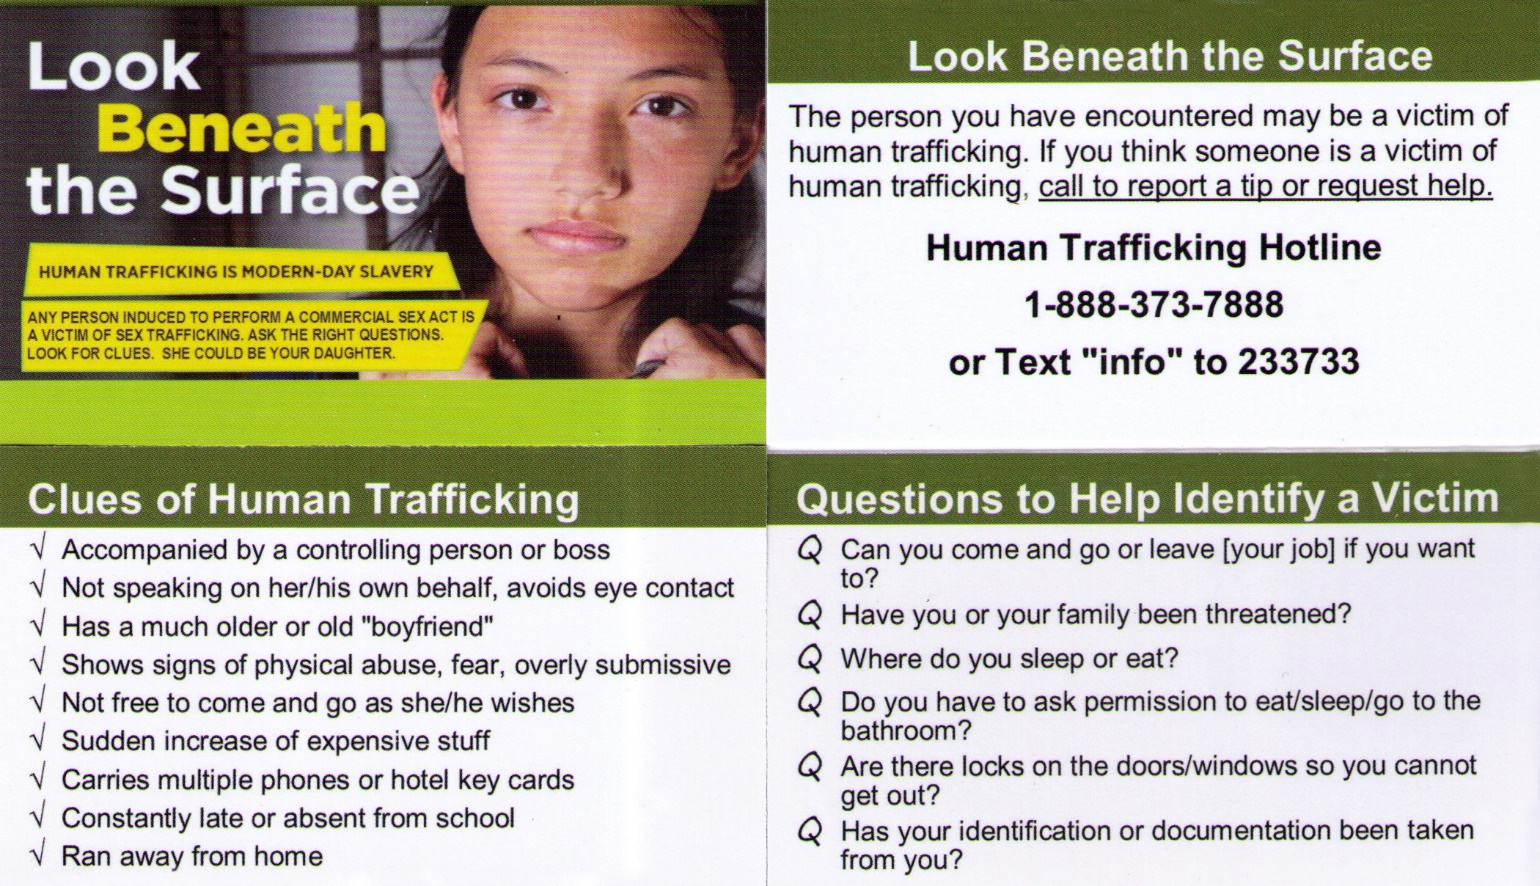 C:\Users\Schmit\Documents\Barb\Optimist\Newsletters\April 2019 articles\Trafficking-4.jpg